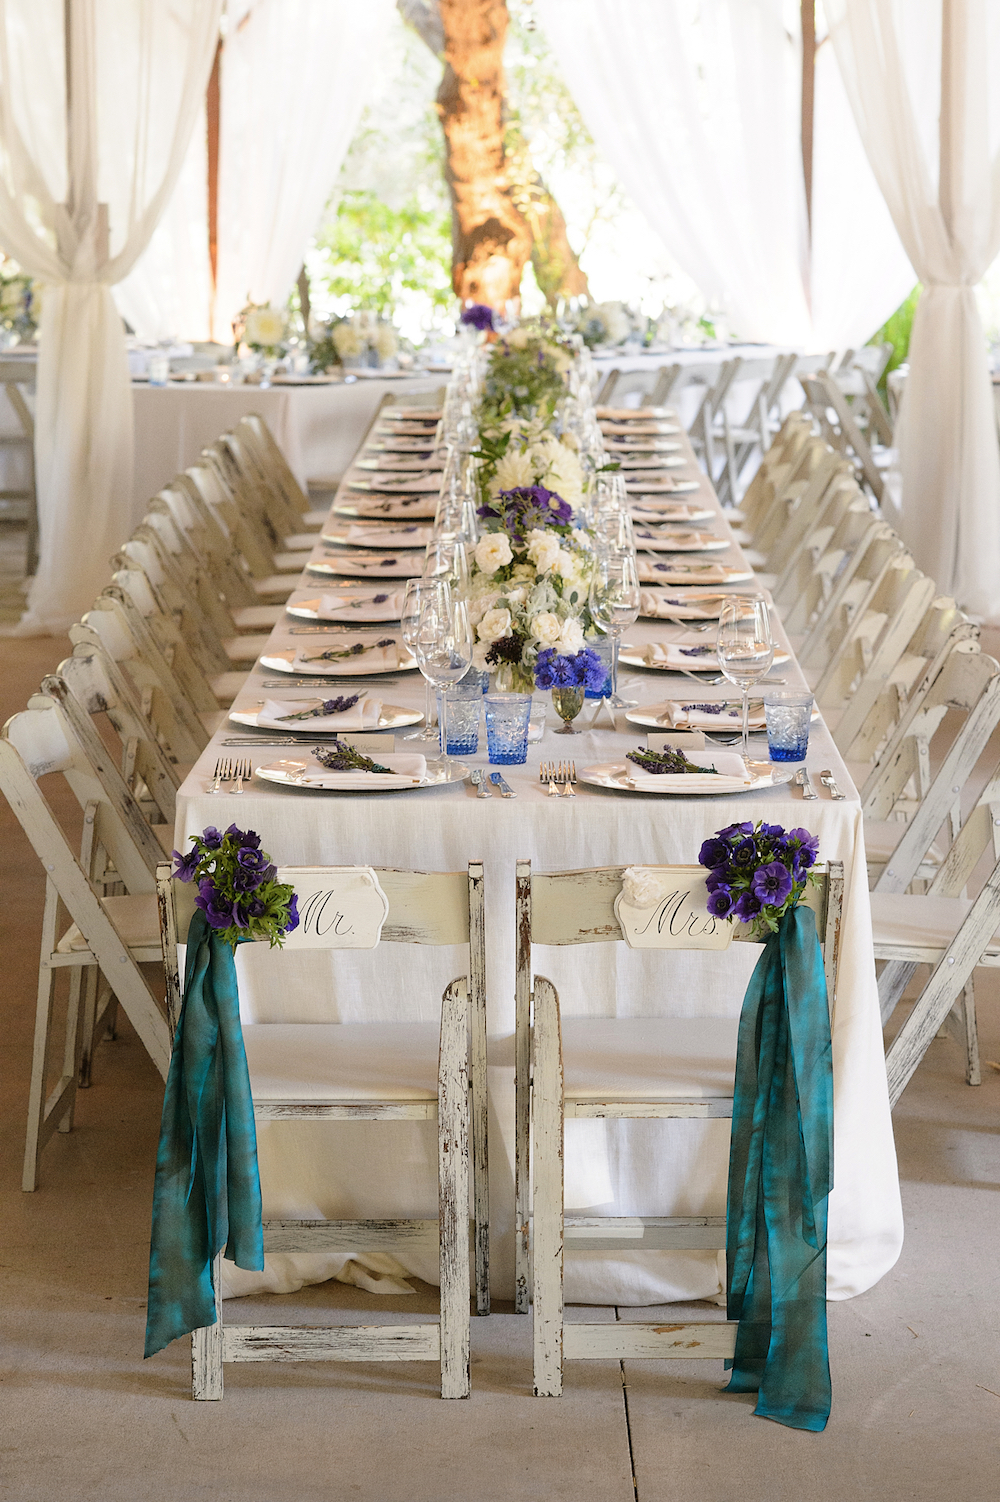 Purple anemone flowers on chair for wedding reception Melissa Claire Egan